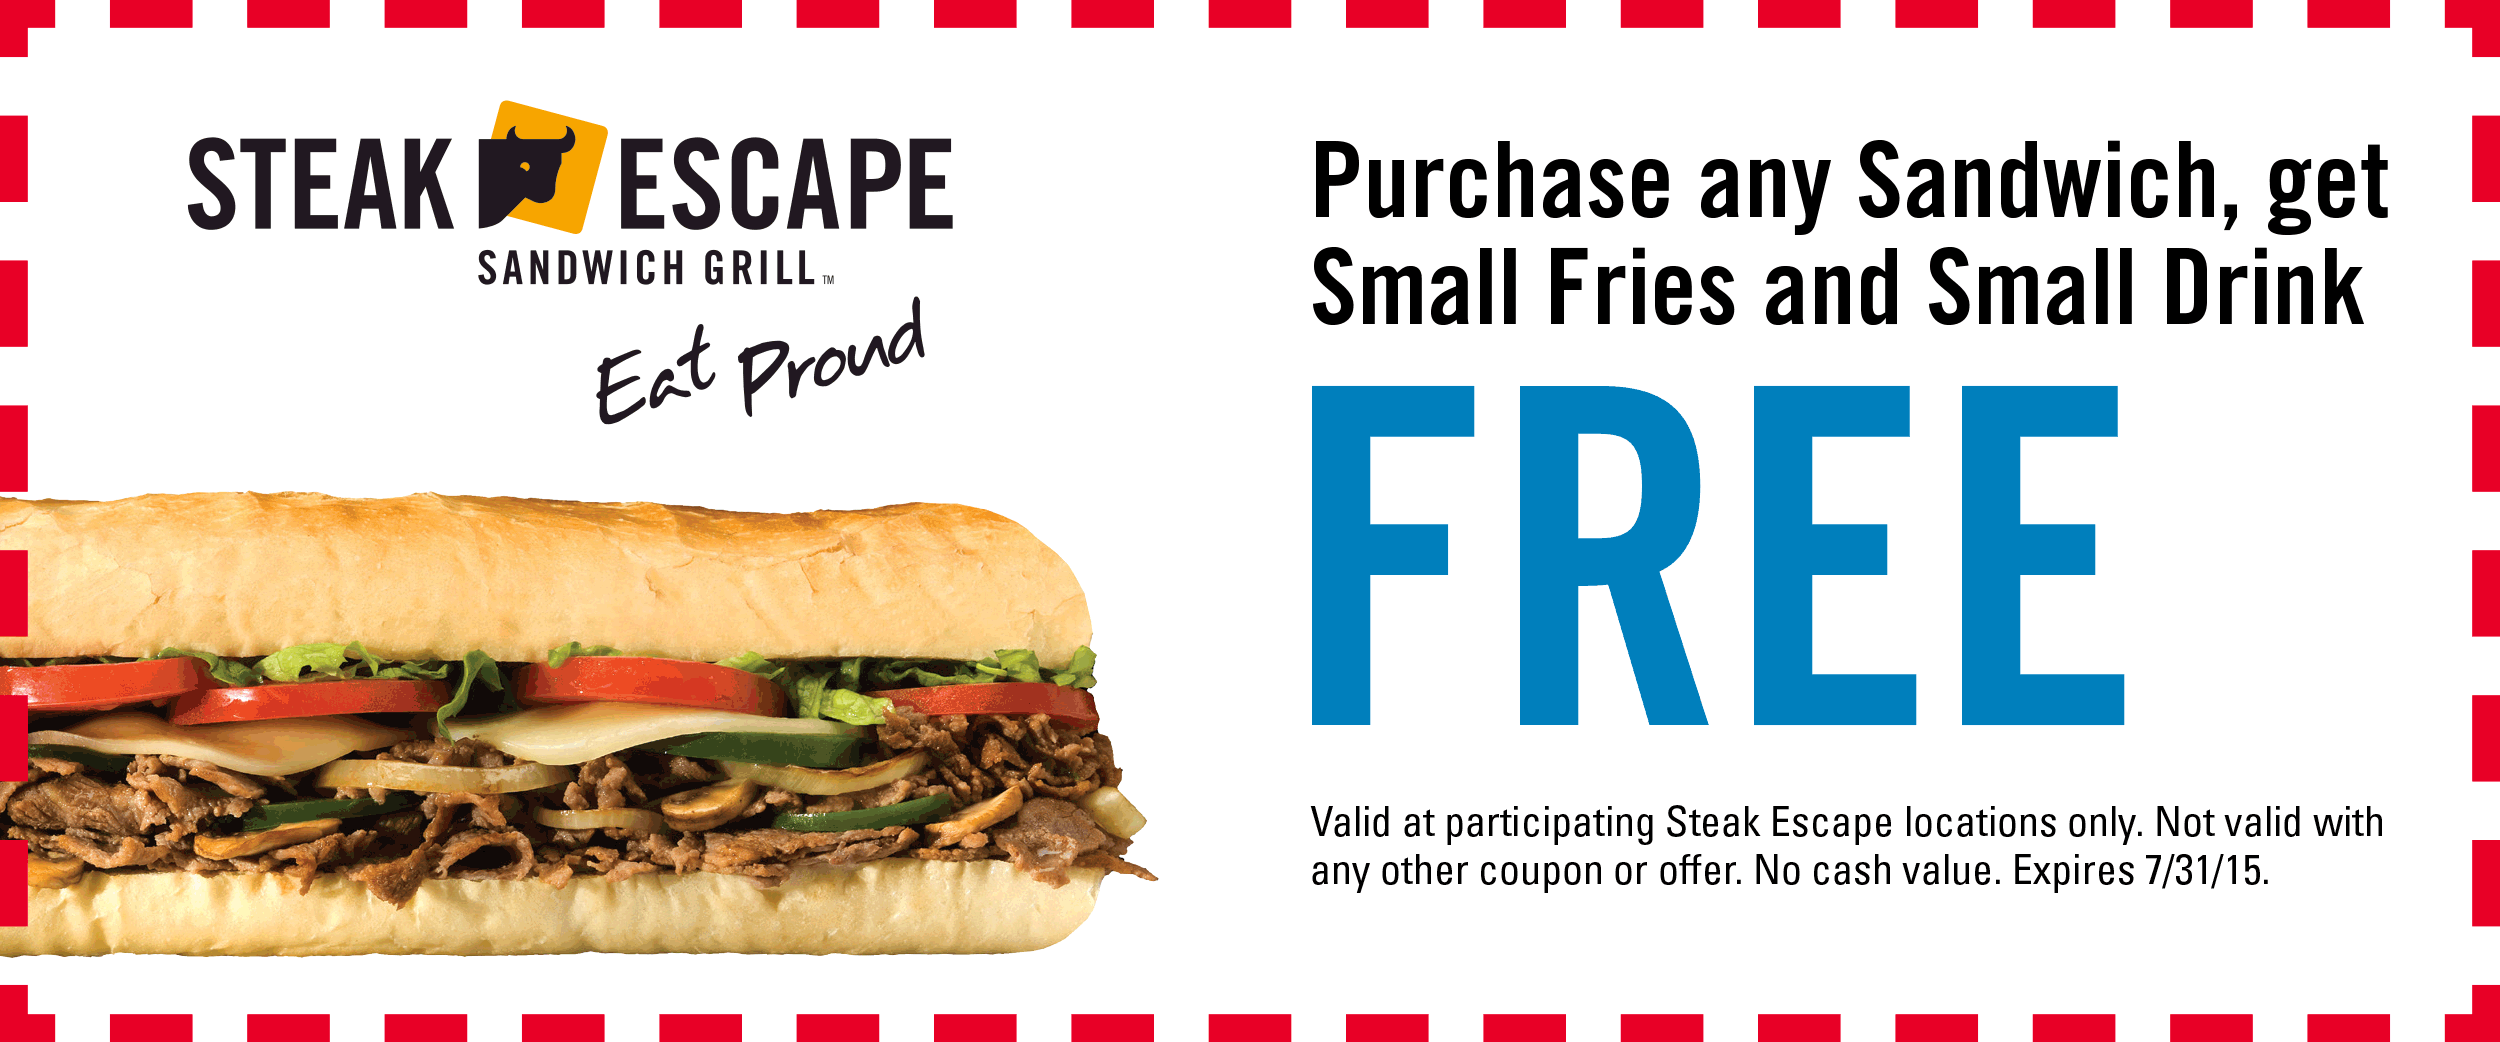 Steak Escape Coupon September 2017 Free fries & drink with your sandwich at Steak Escape grill